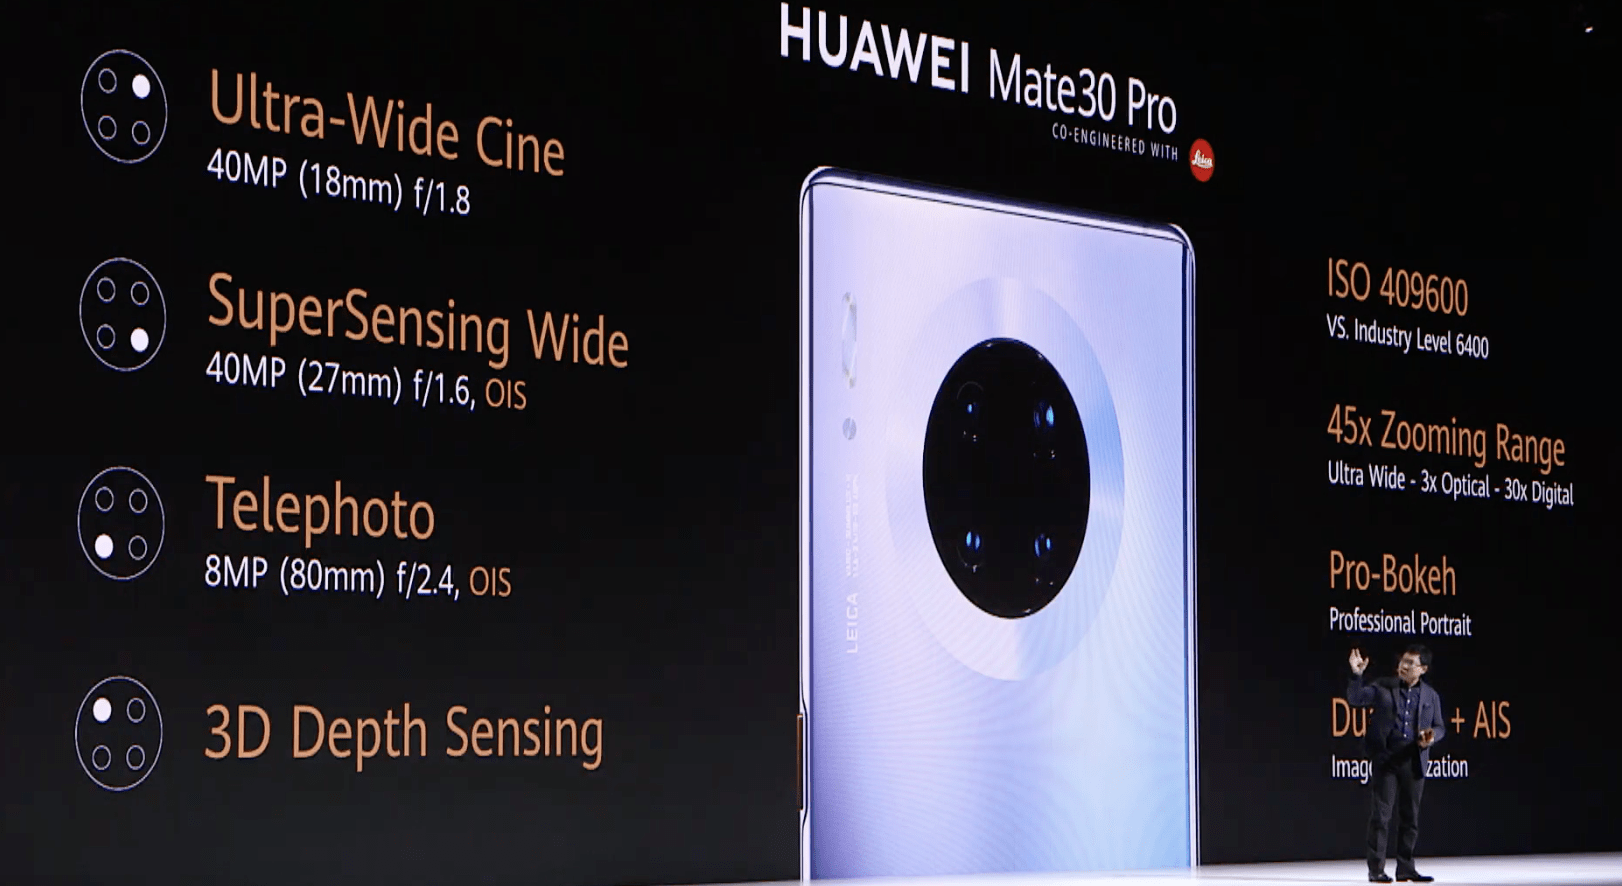 Huawei's Mate 30 Pro has a 'quad-camera' and a vegan leather option